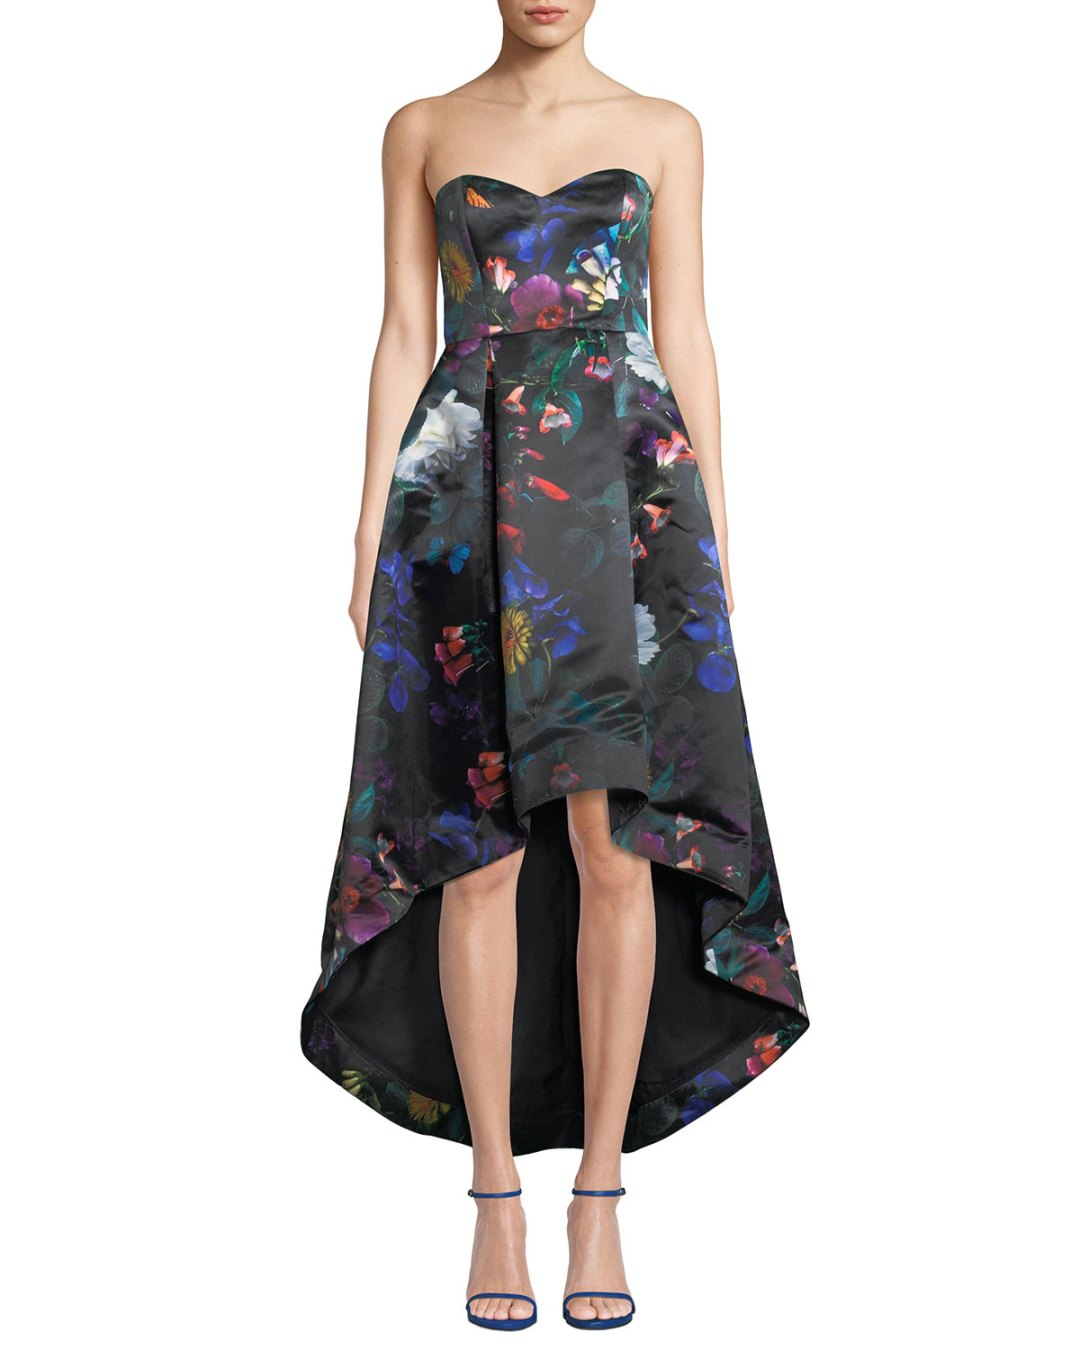 10c23488e84b0 Neiman Marcus – Roxanne Strapless High-Low Floral Satin Dress – $365.00